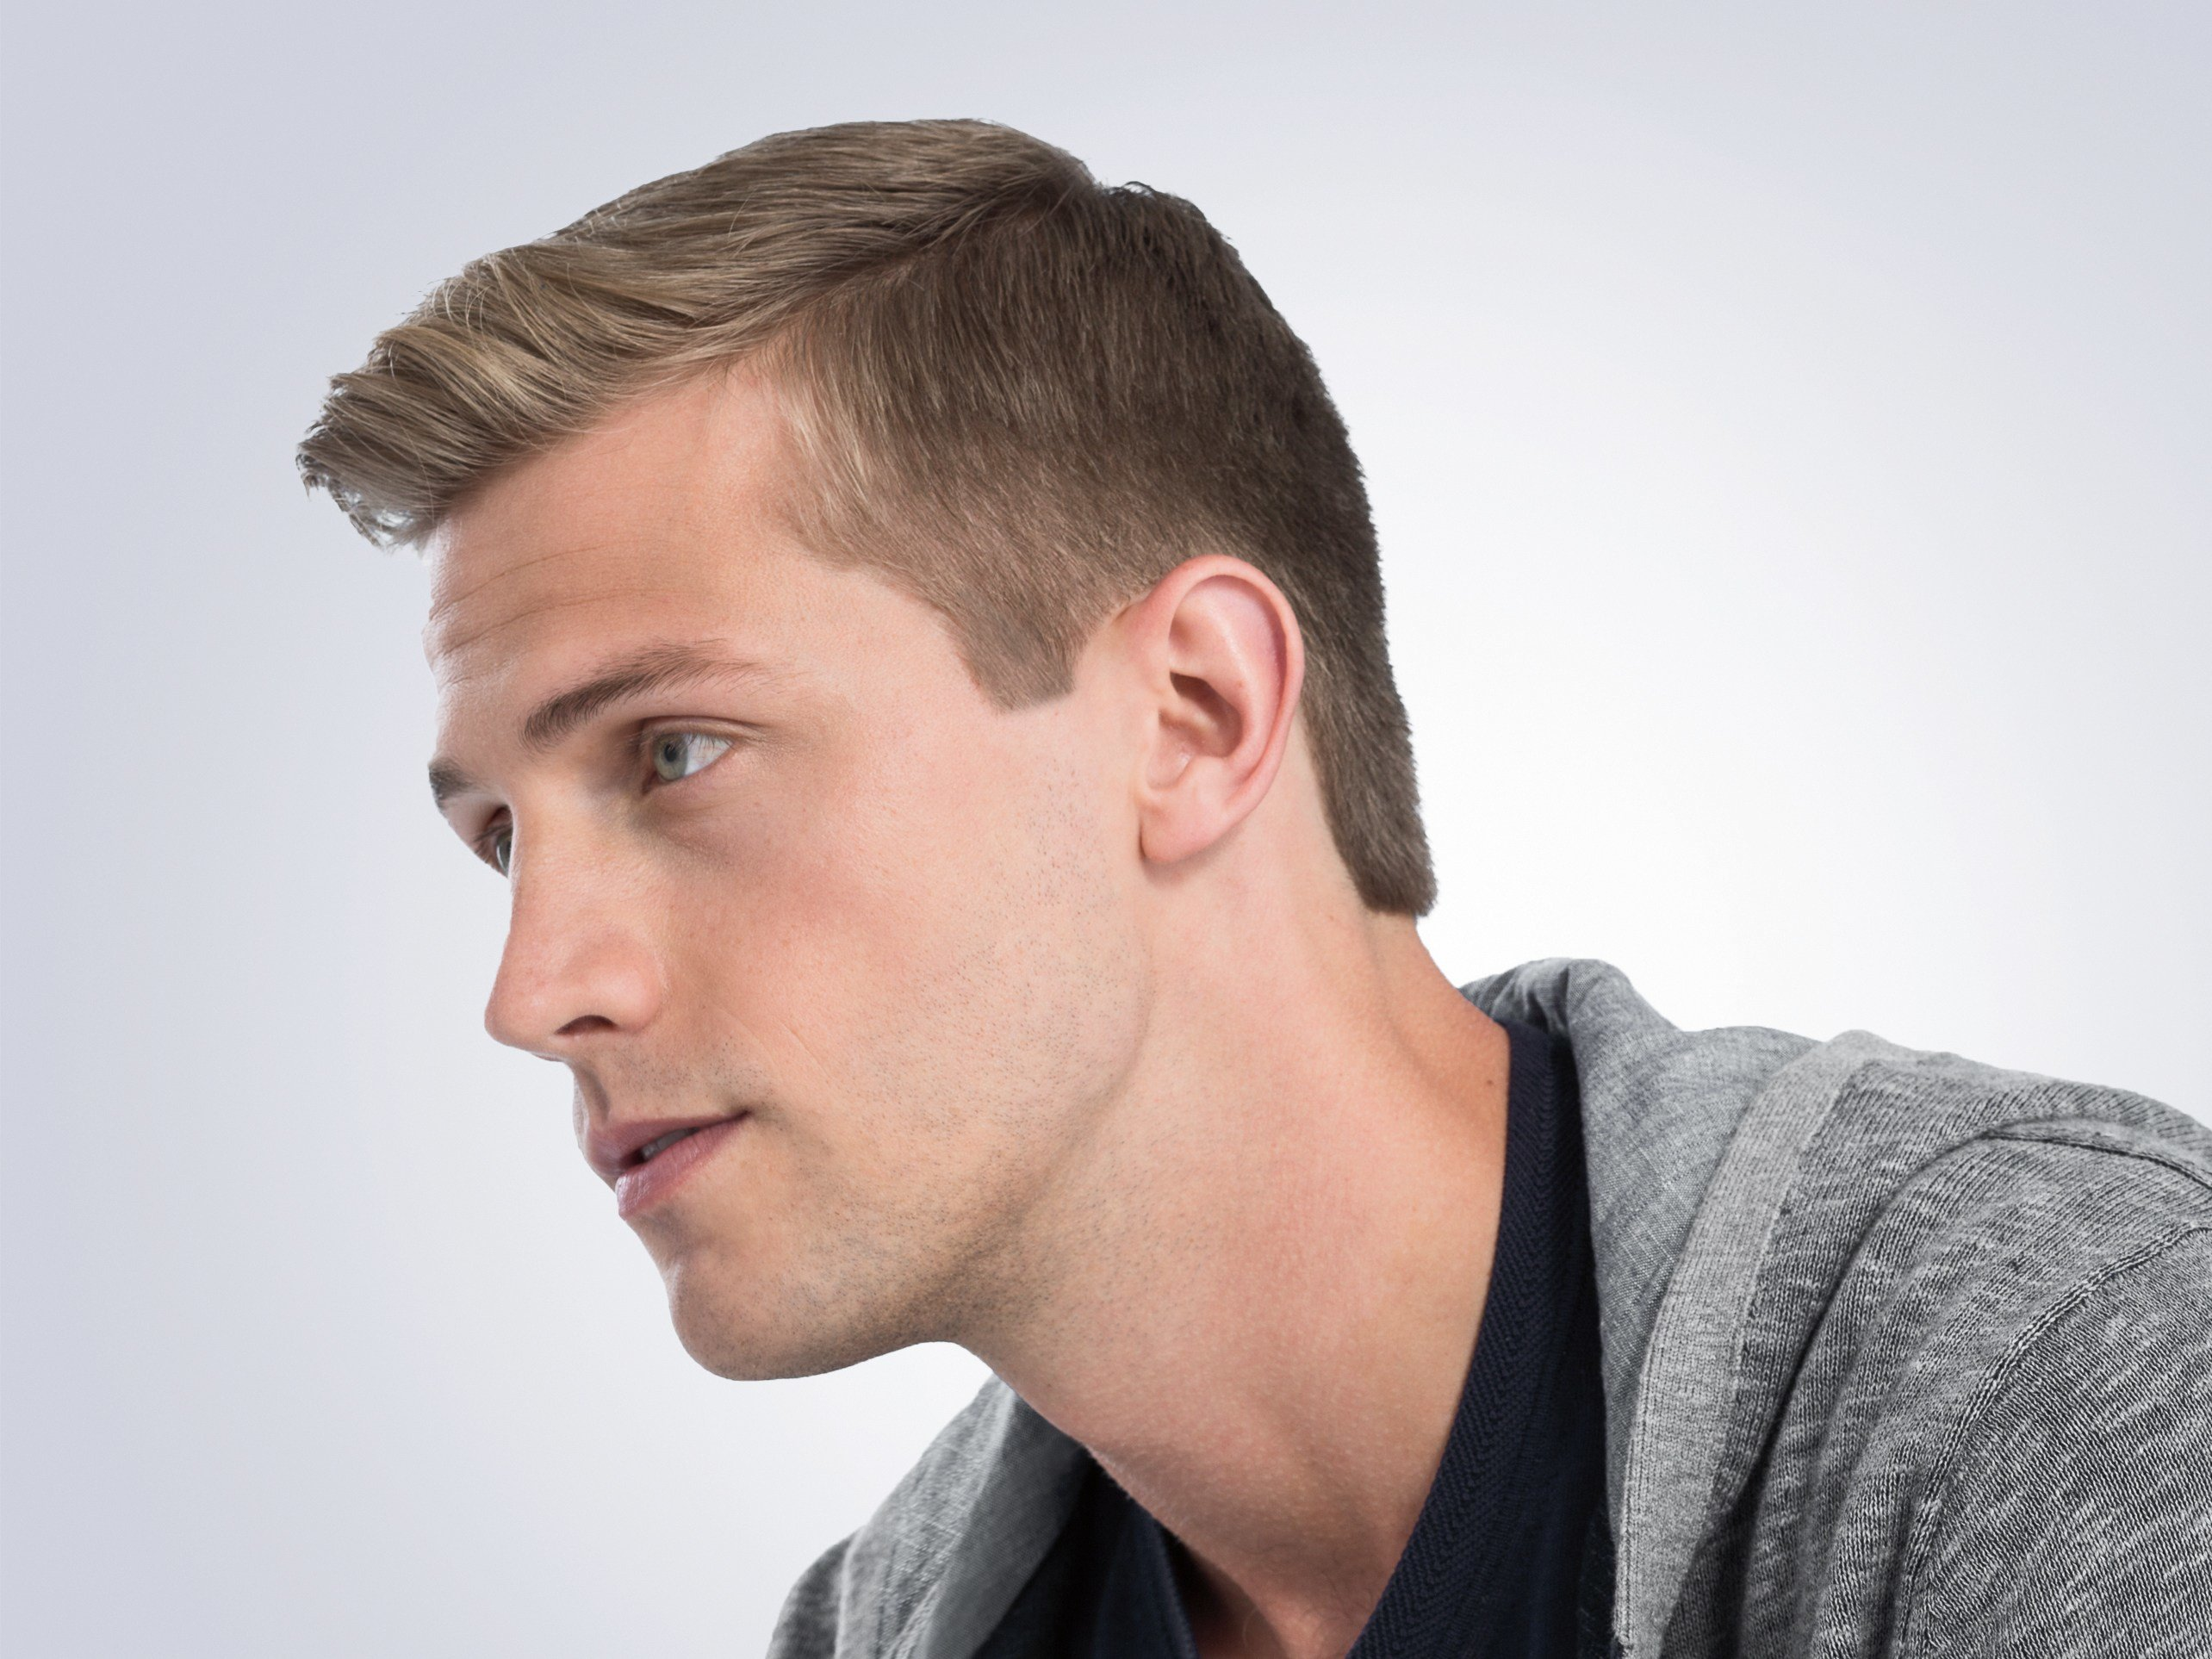 New Haircut At Supercuts Price Haircuts Models Ideas Ideas With Pictures